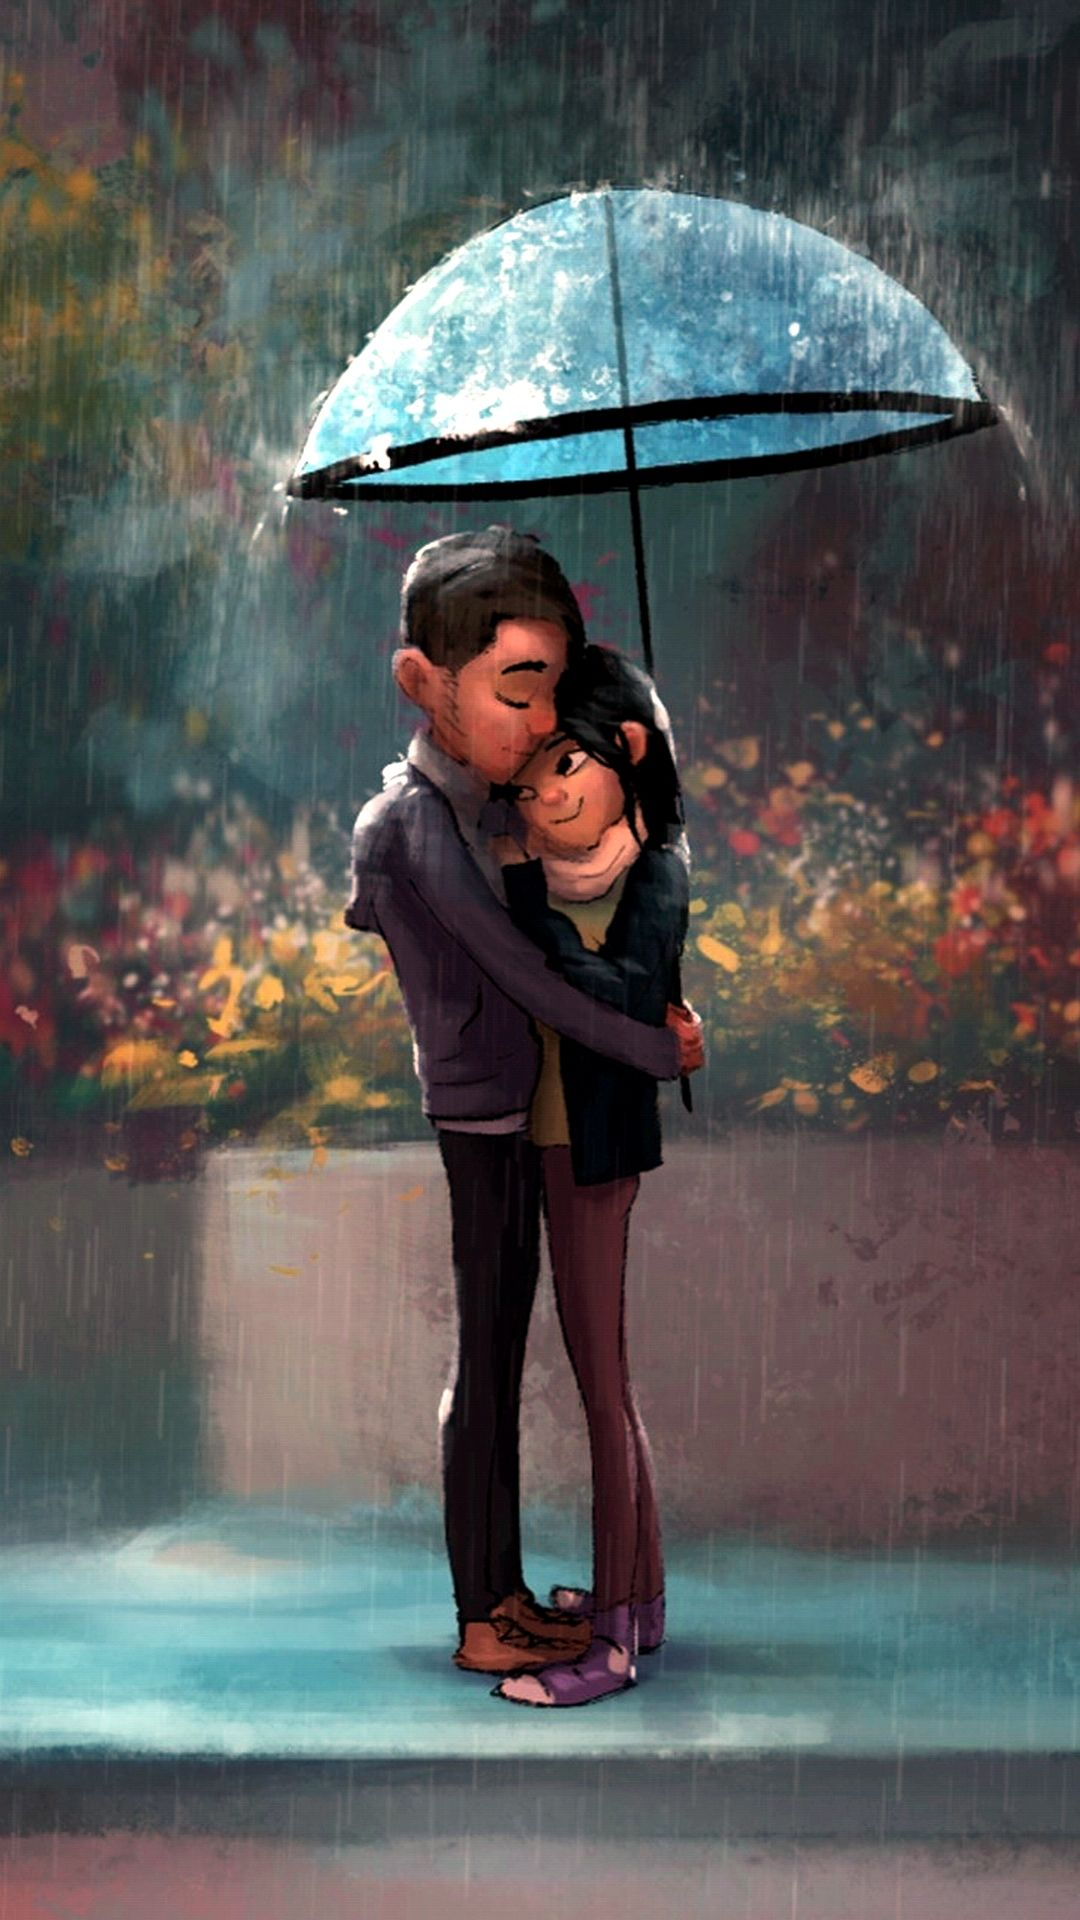 Lovers Apple Iphone 6 Hd Wallpapers Available For Free Download Painting Love Couple Couple Cartoon Love Cartoon Couple